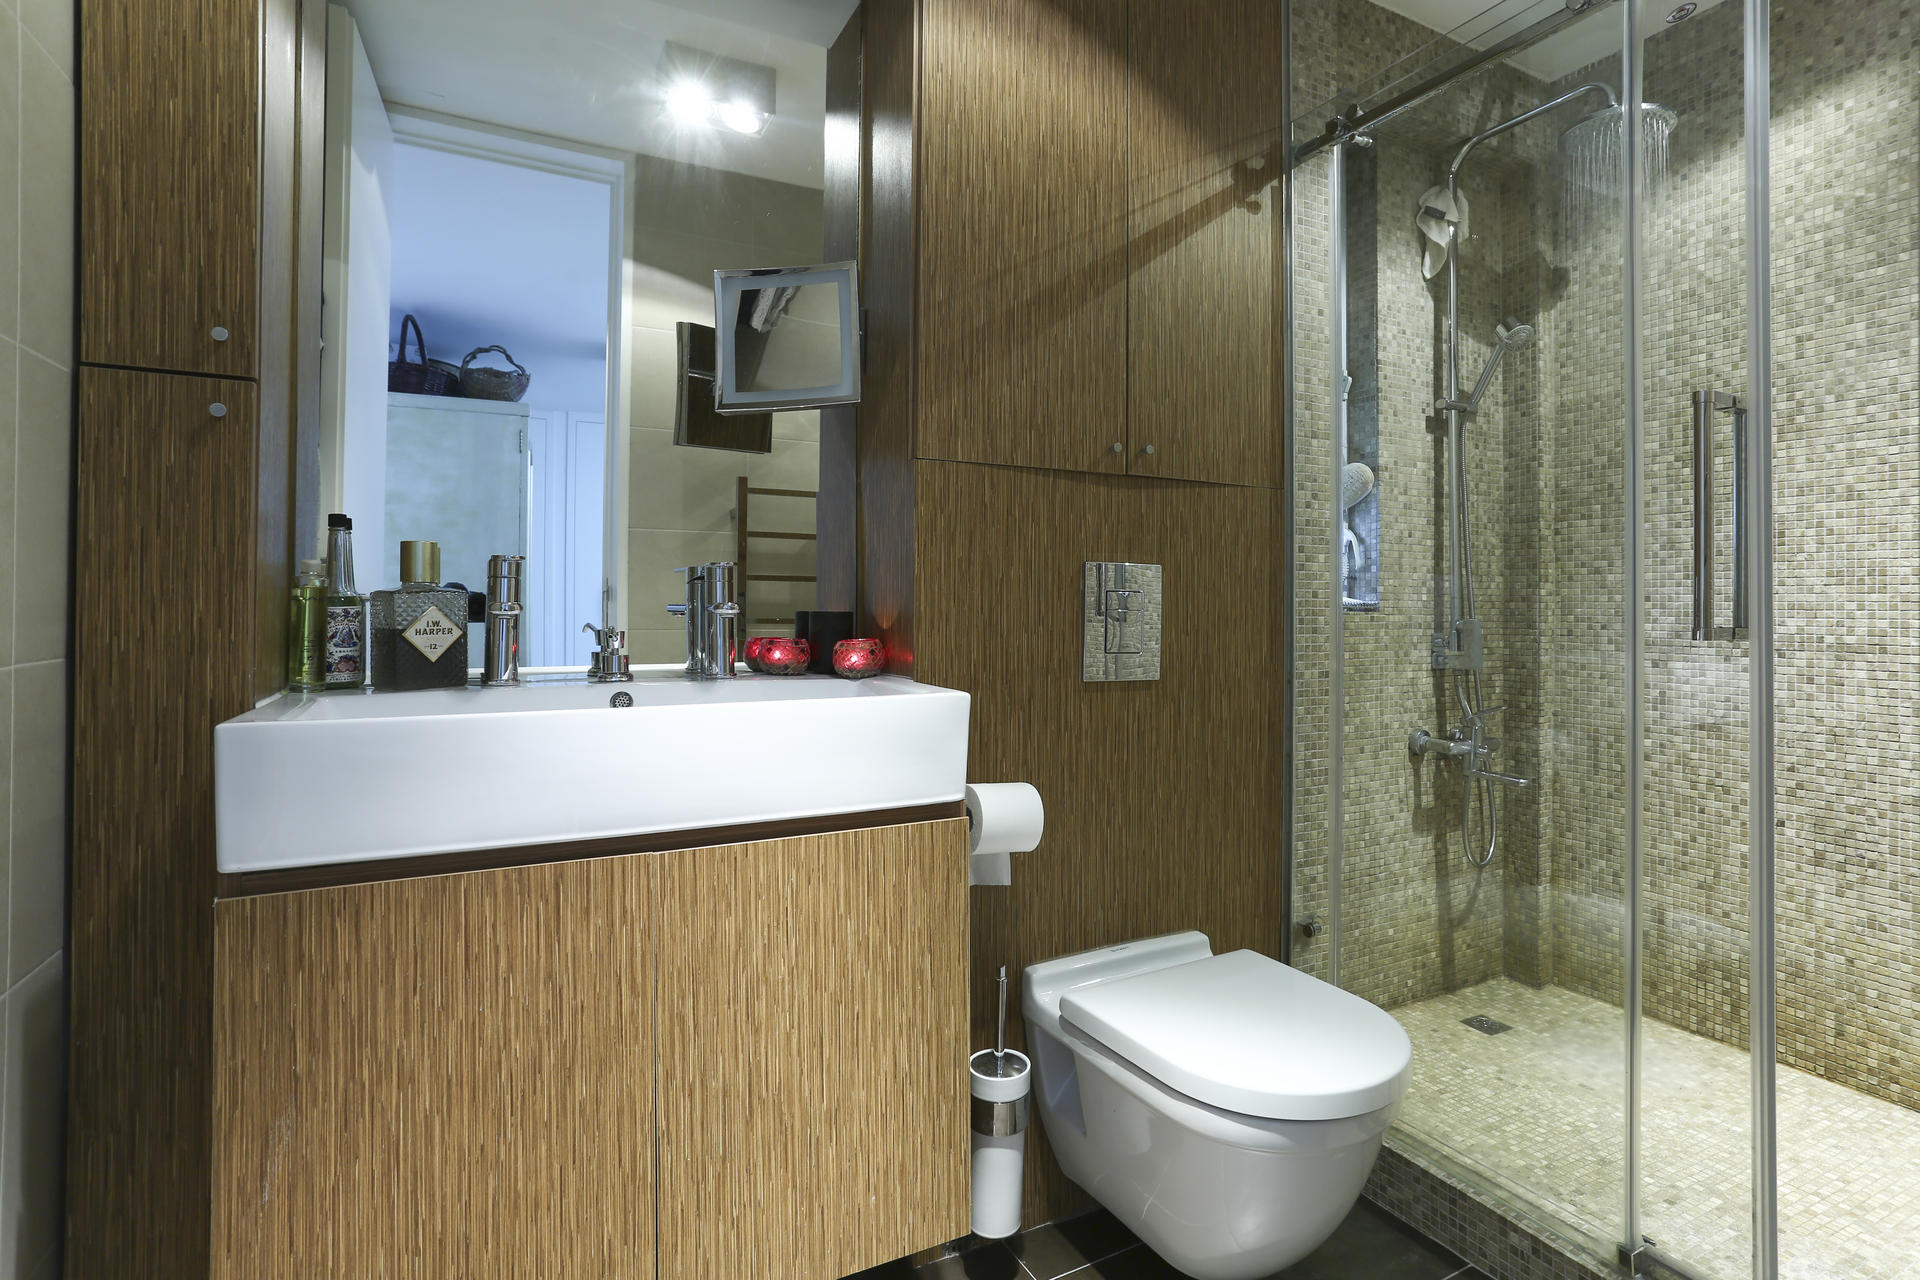 Endearing 60 Bathroom Design Hong Kong Decorating Design Of Hong Kong Small Toilet Bathroom